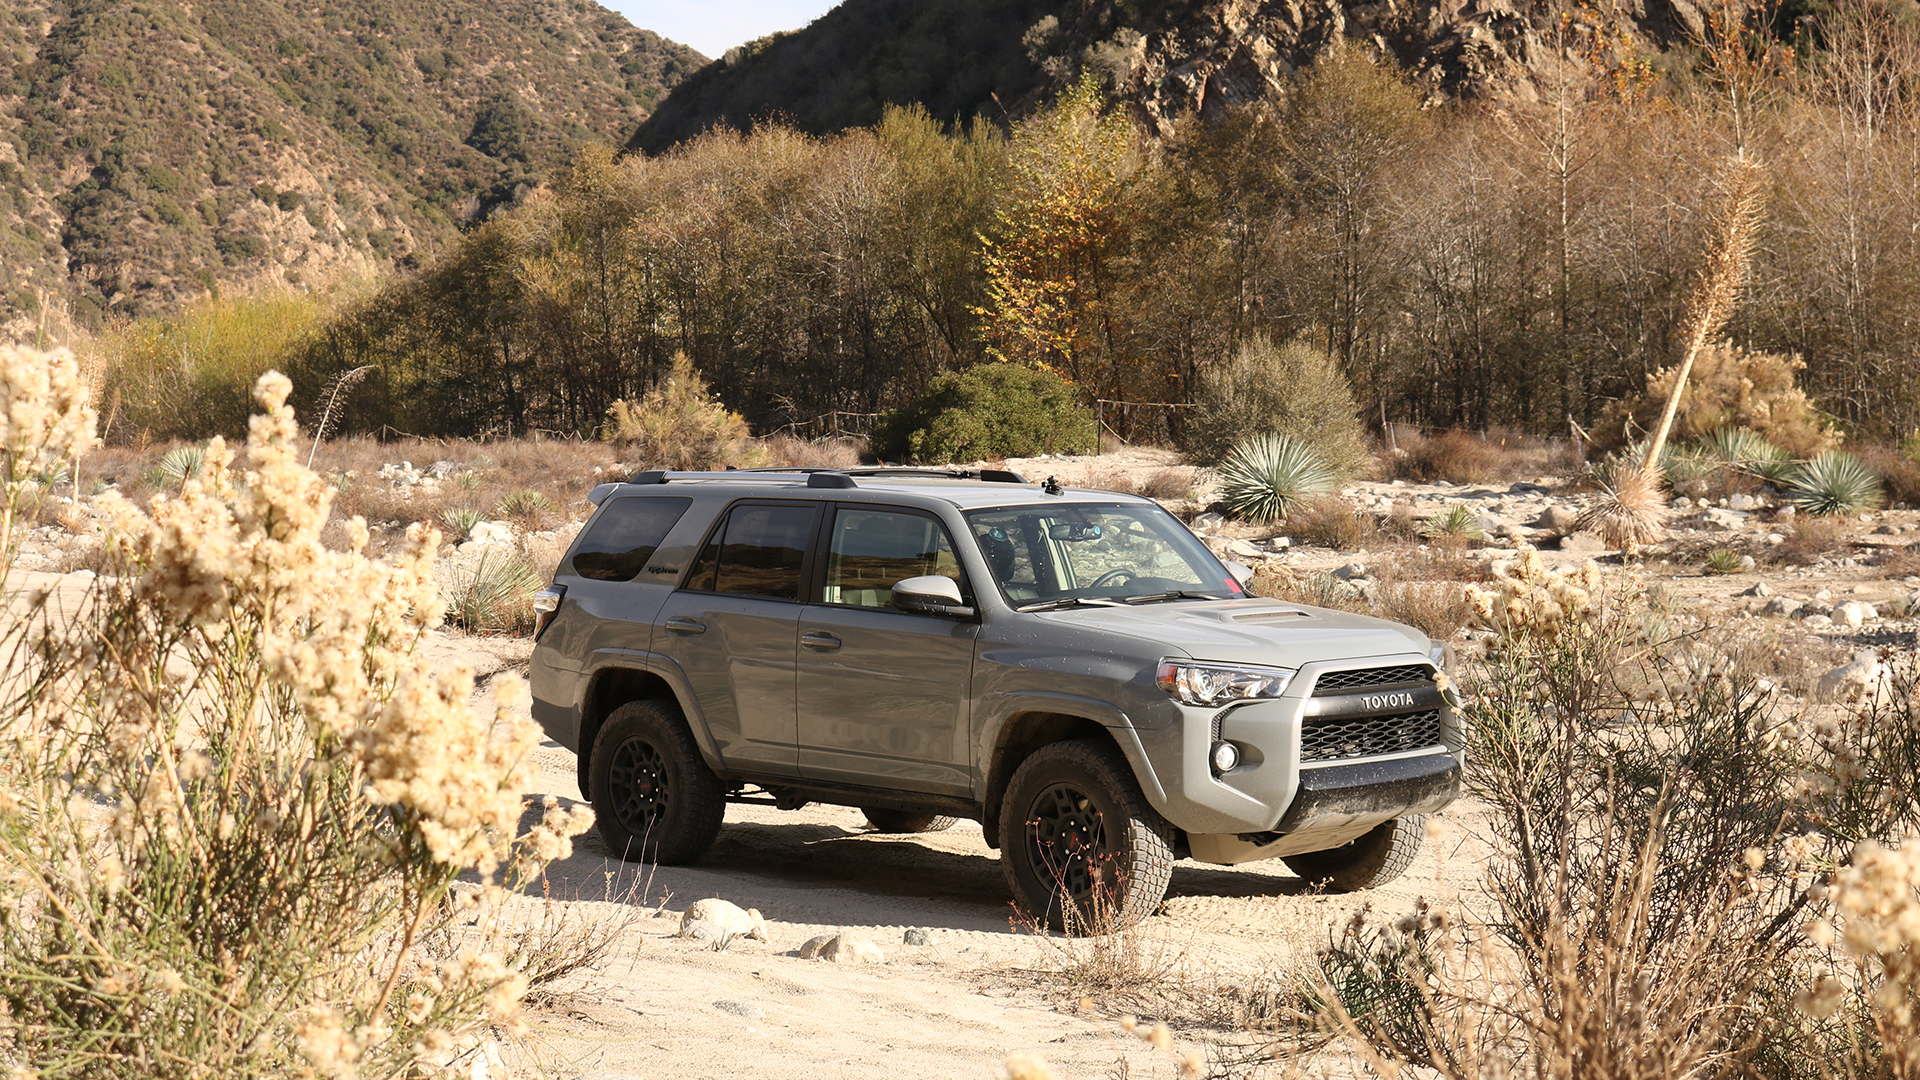 4runner Trd Pro Review >> 2017 Toyota 4Runner TRD Pro Review: Old-School, Off-Road Goodness Done Right - The Drive